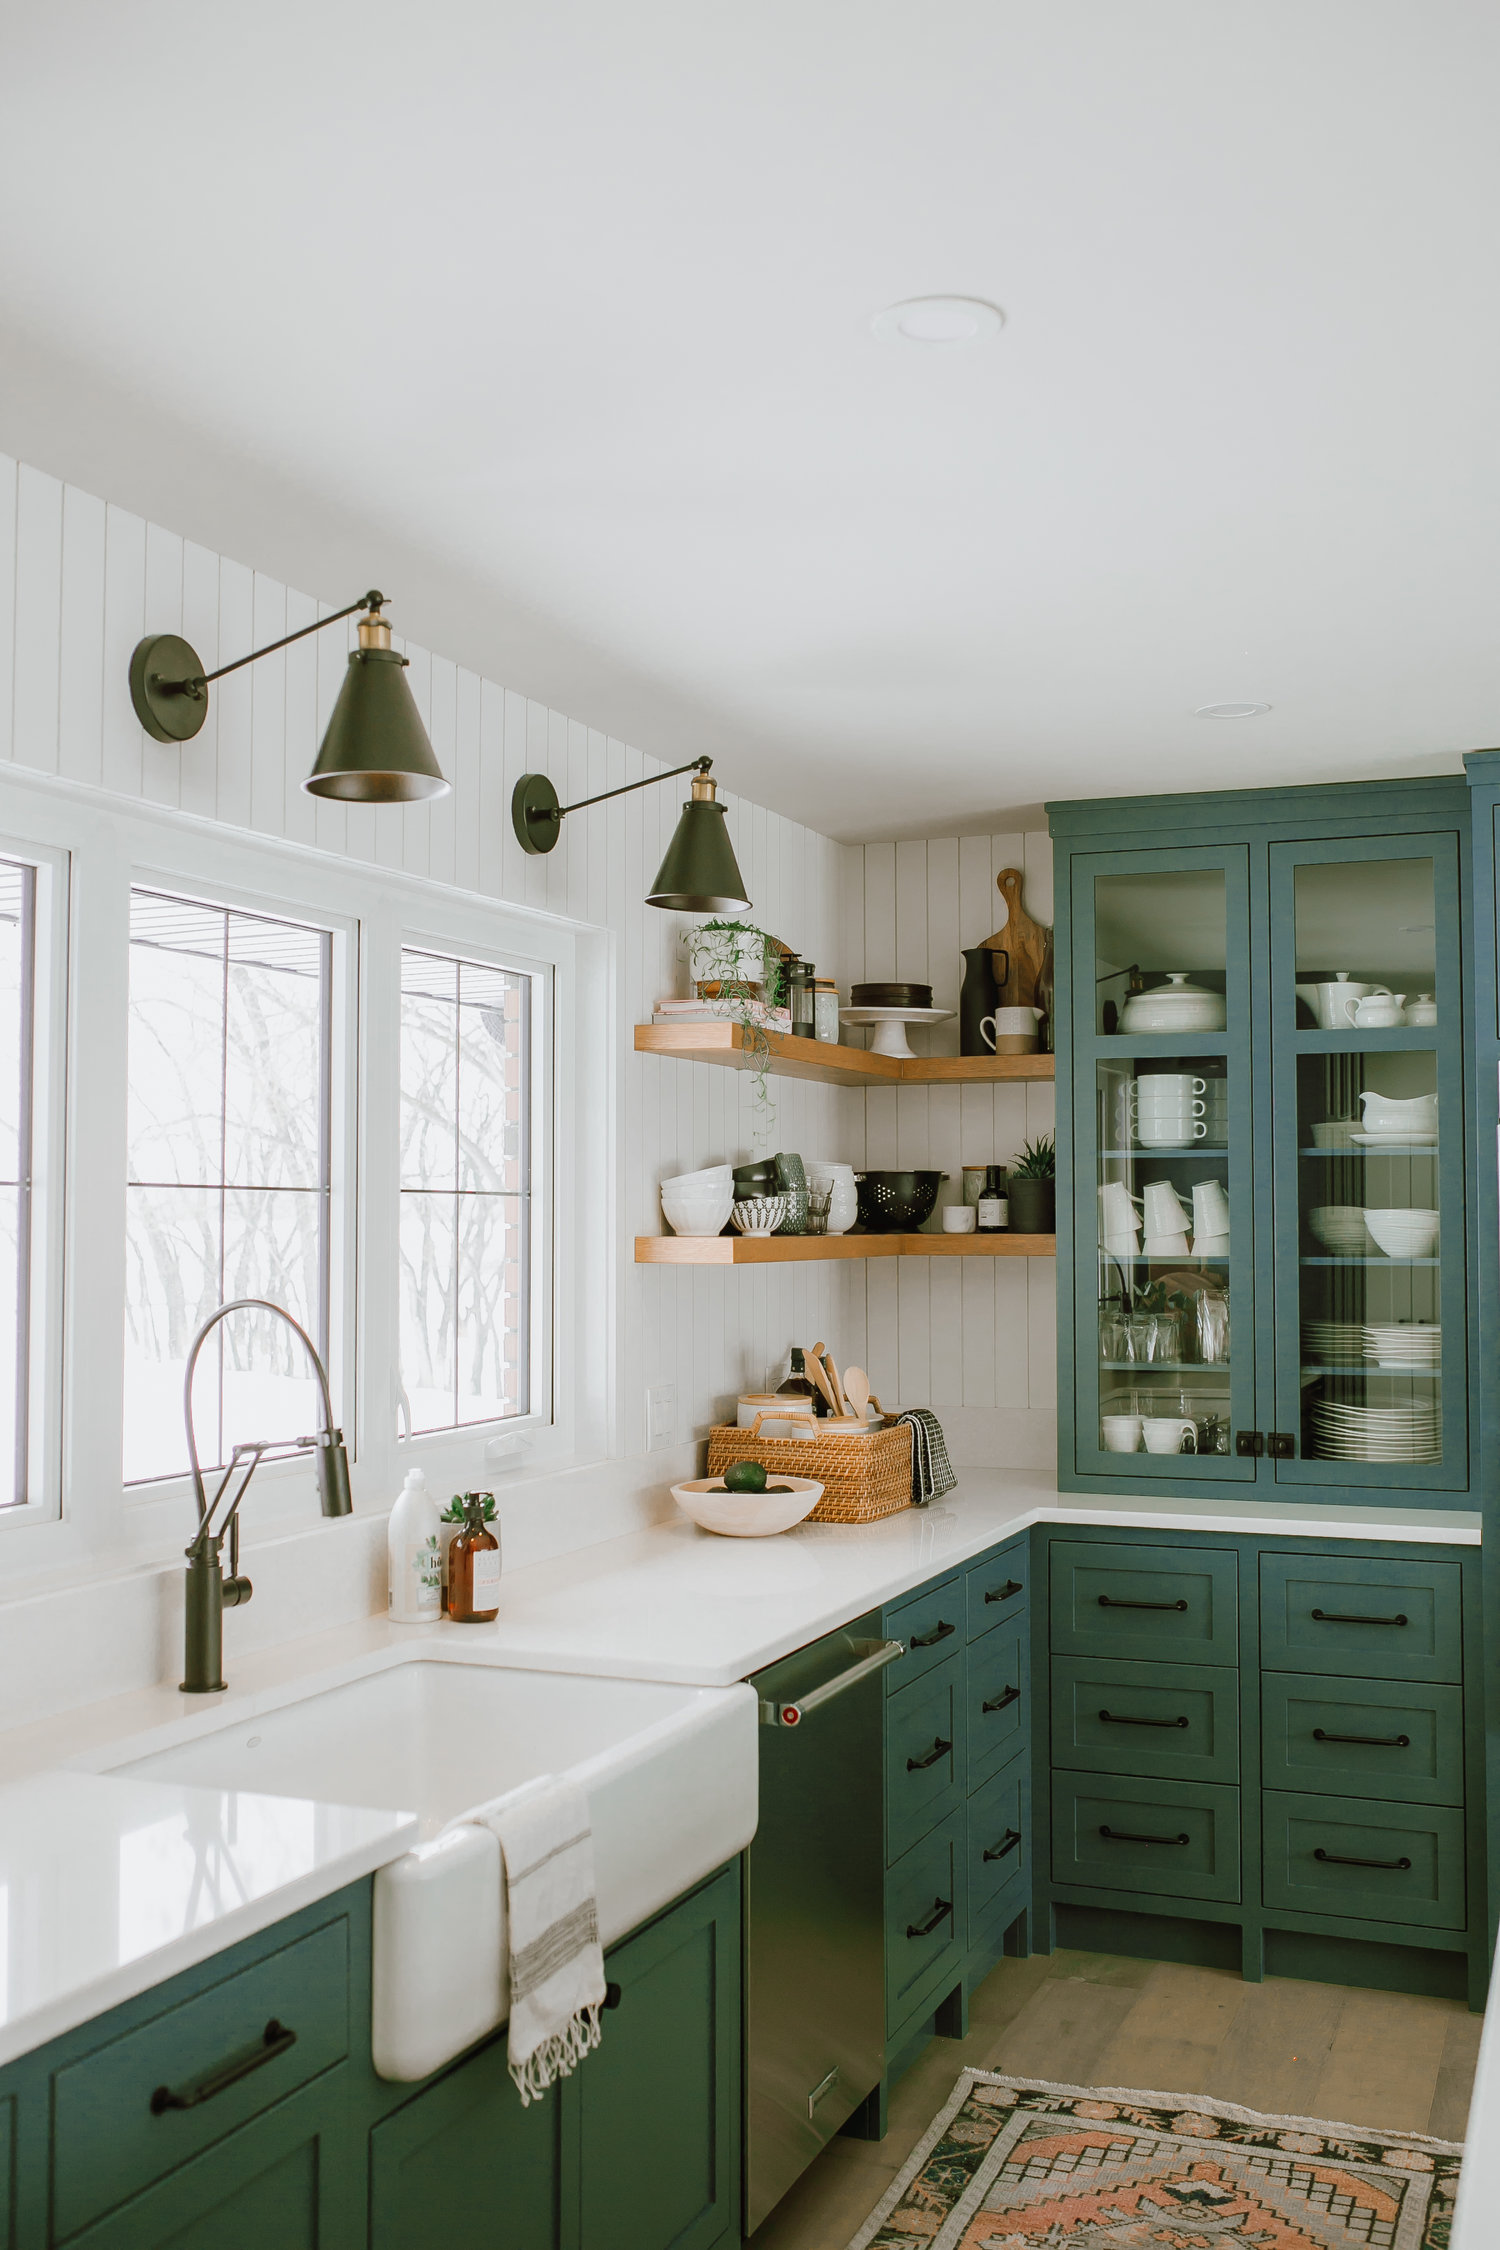 5 Shades Of Green For Your Kitchen Cabinets Emily A Clark